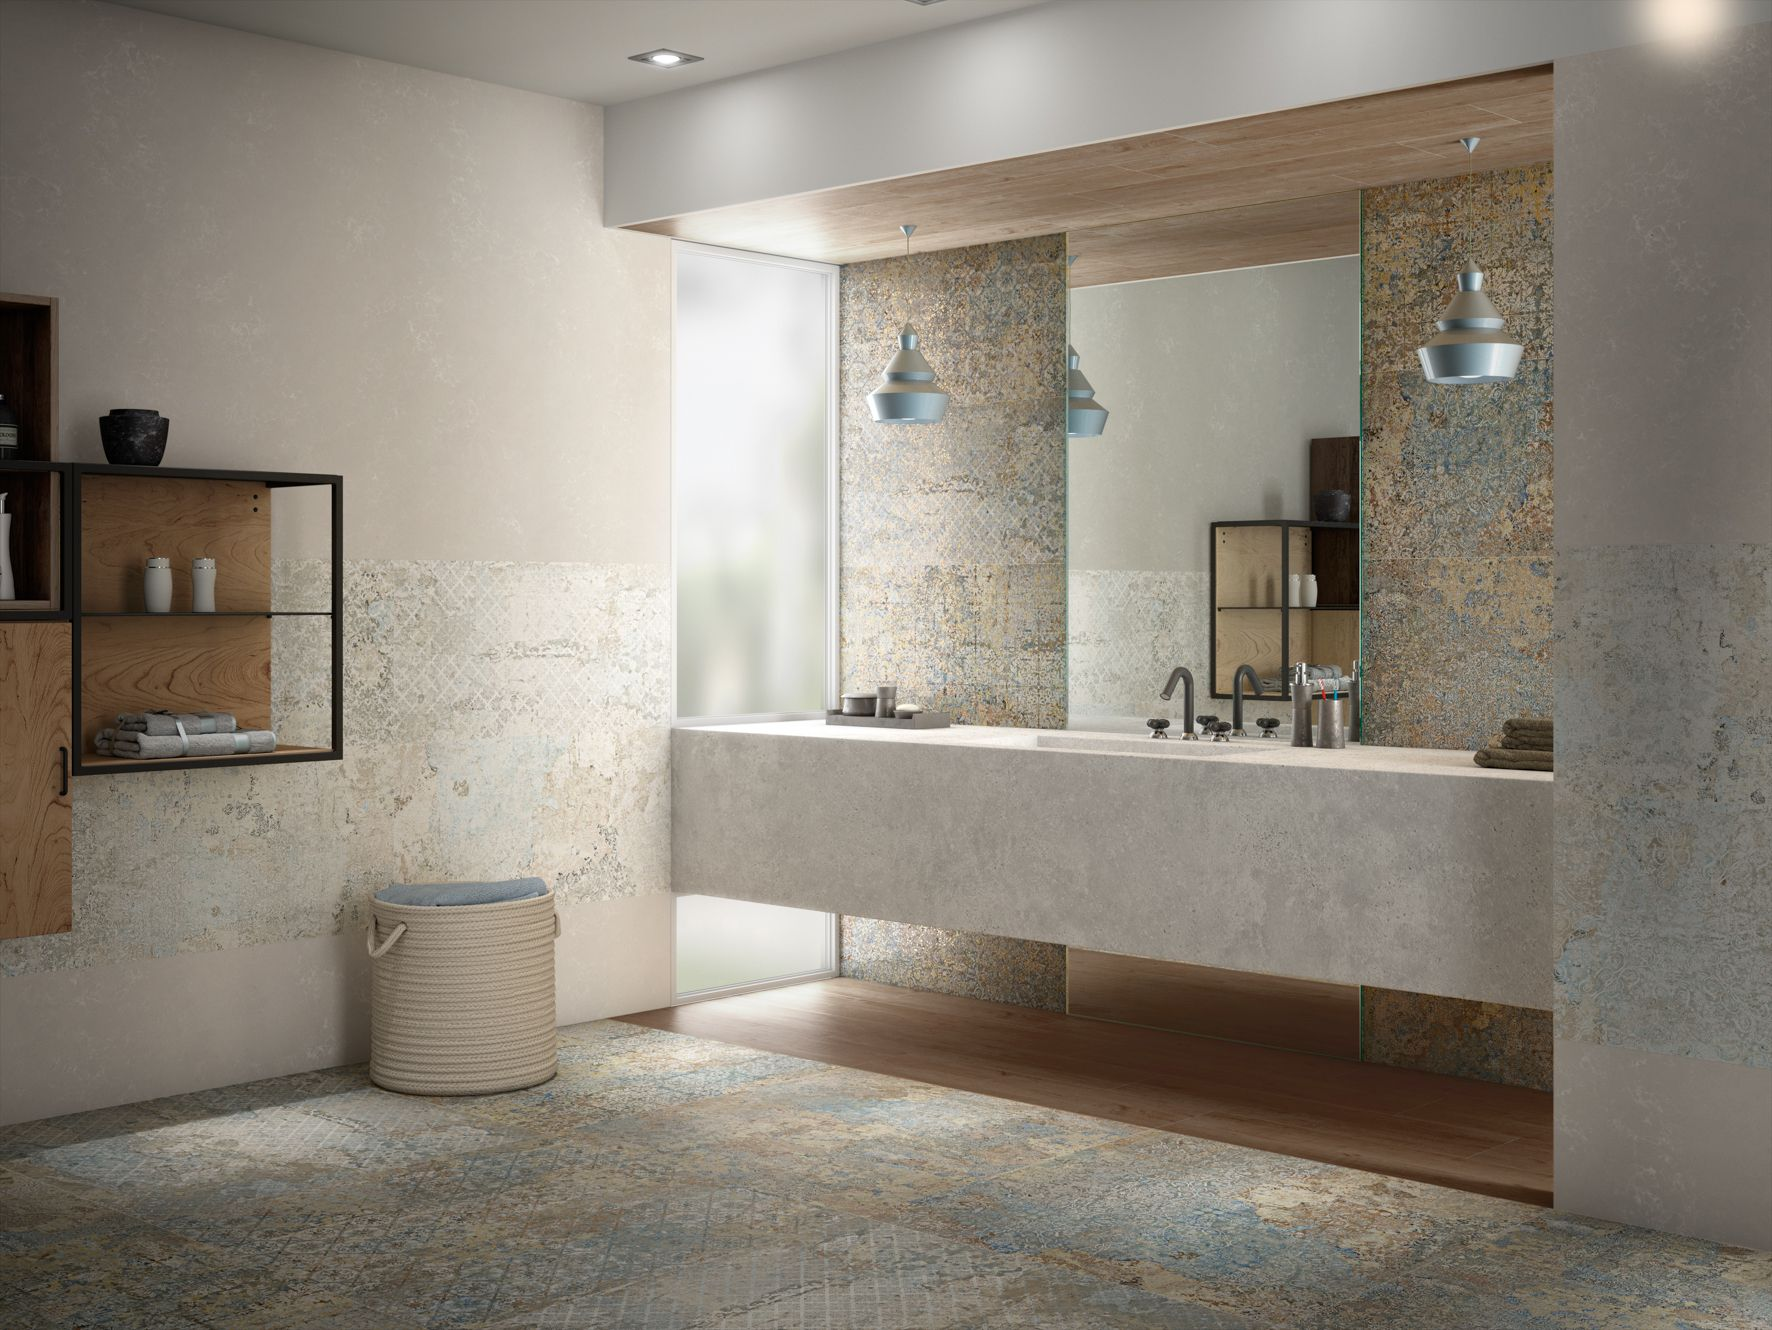 Aparici carpet floor tile part of the tile of spain for Bathroom tiles spain